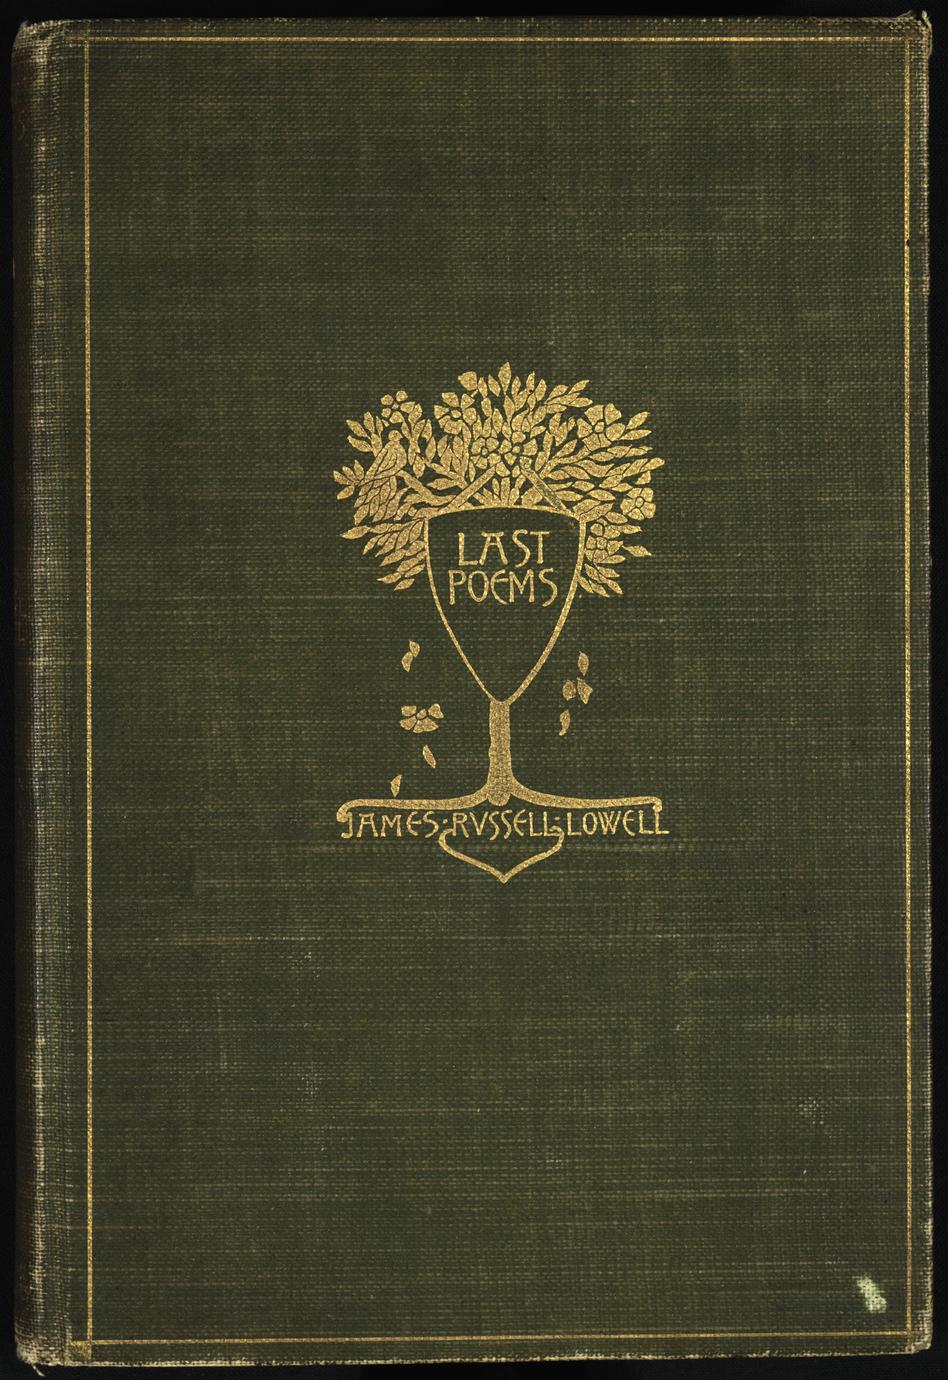 Last poems of James Russell Lowell